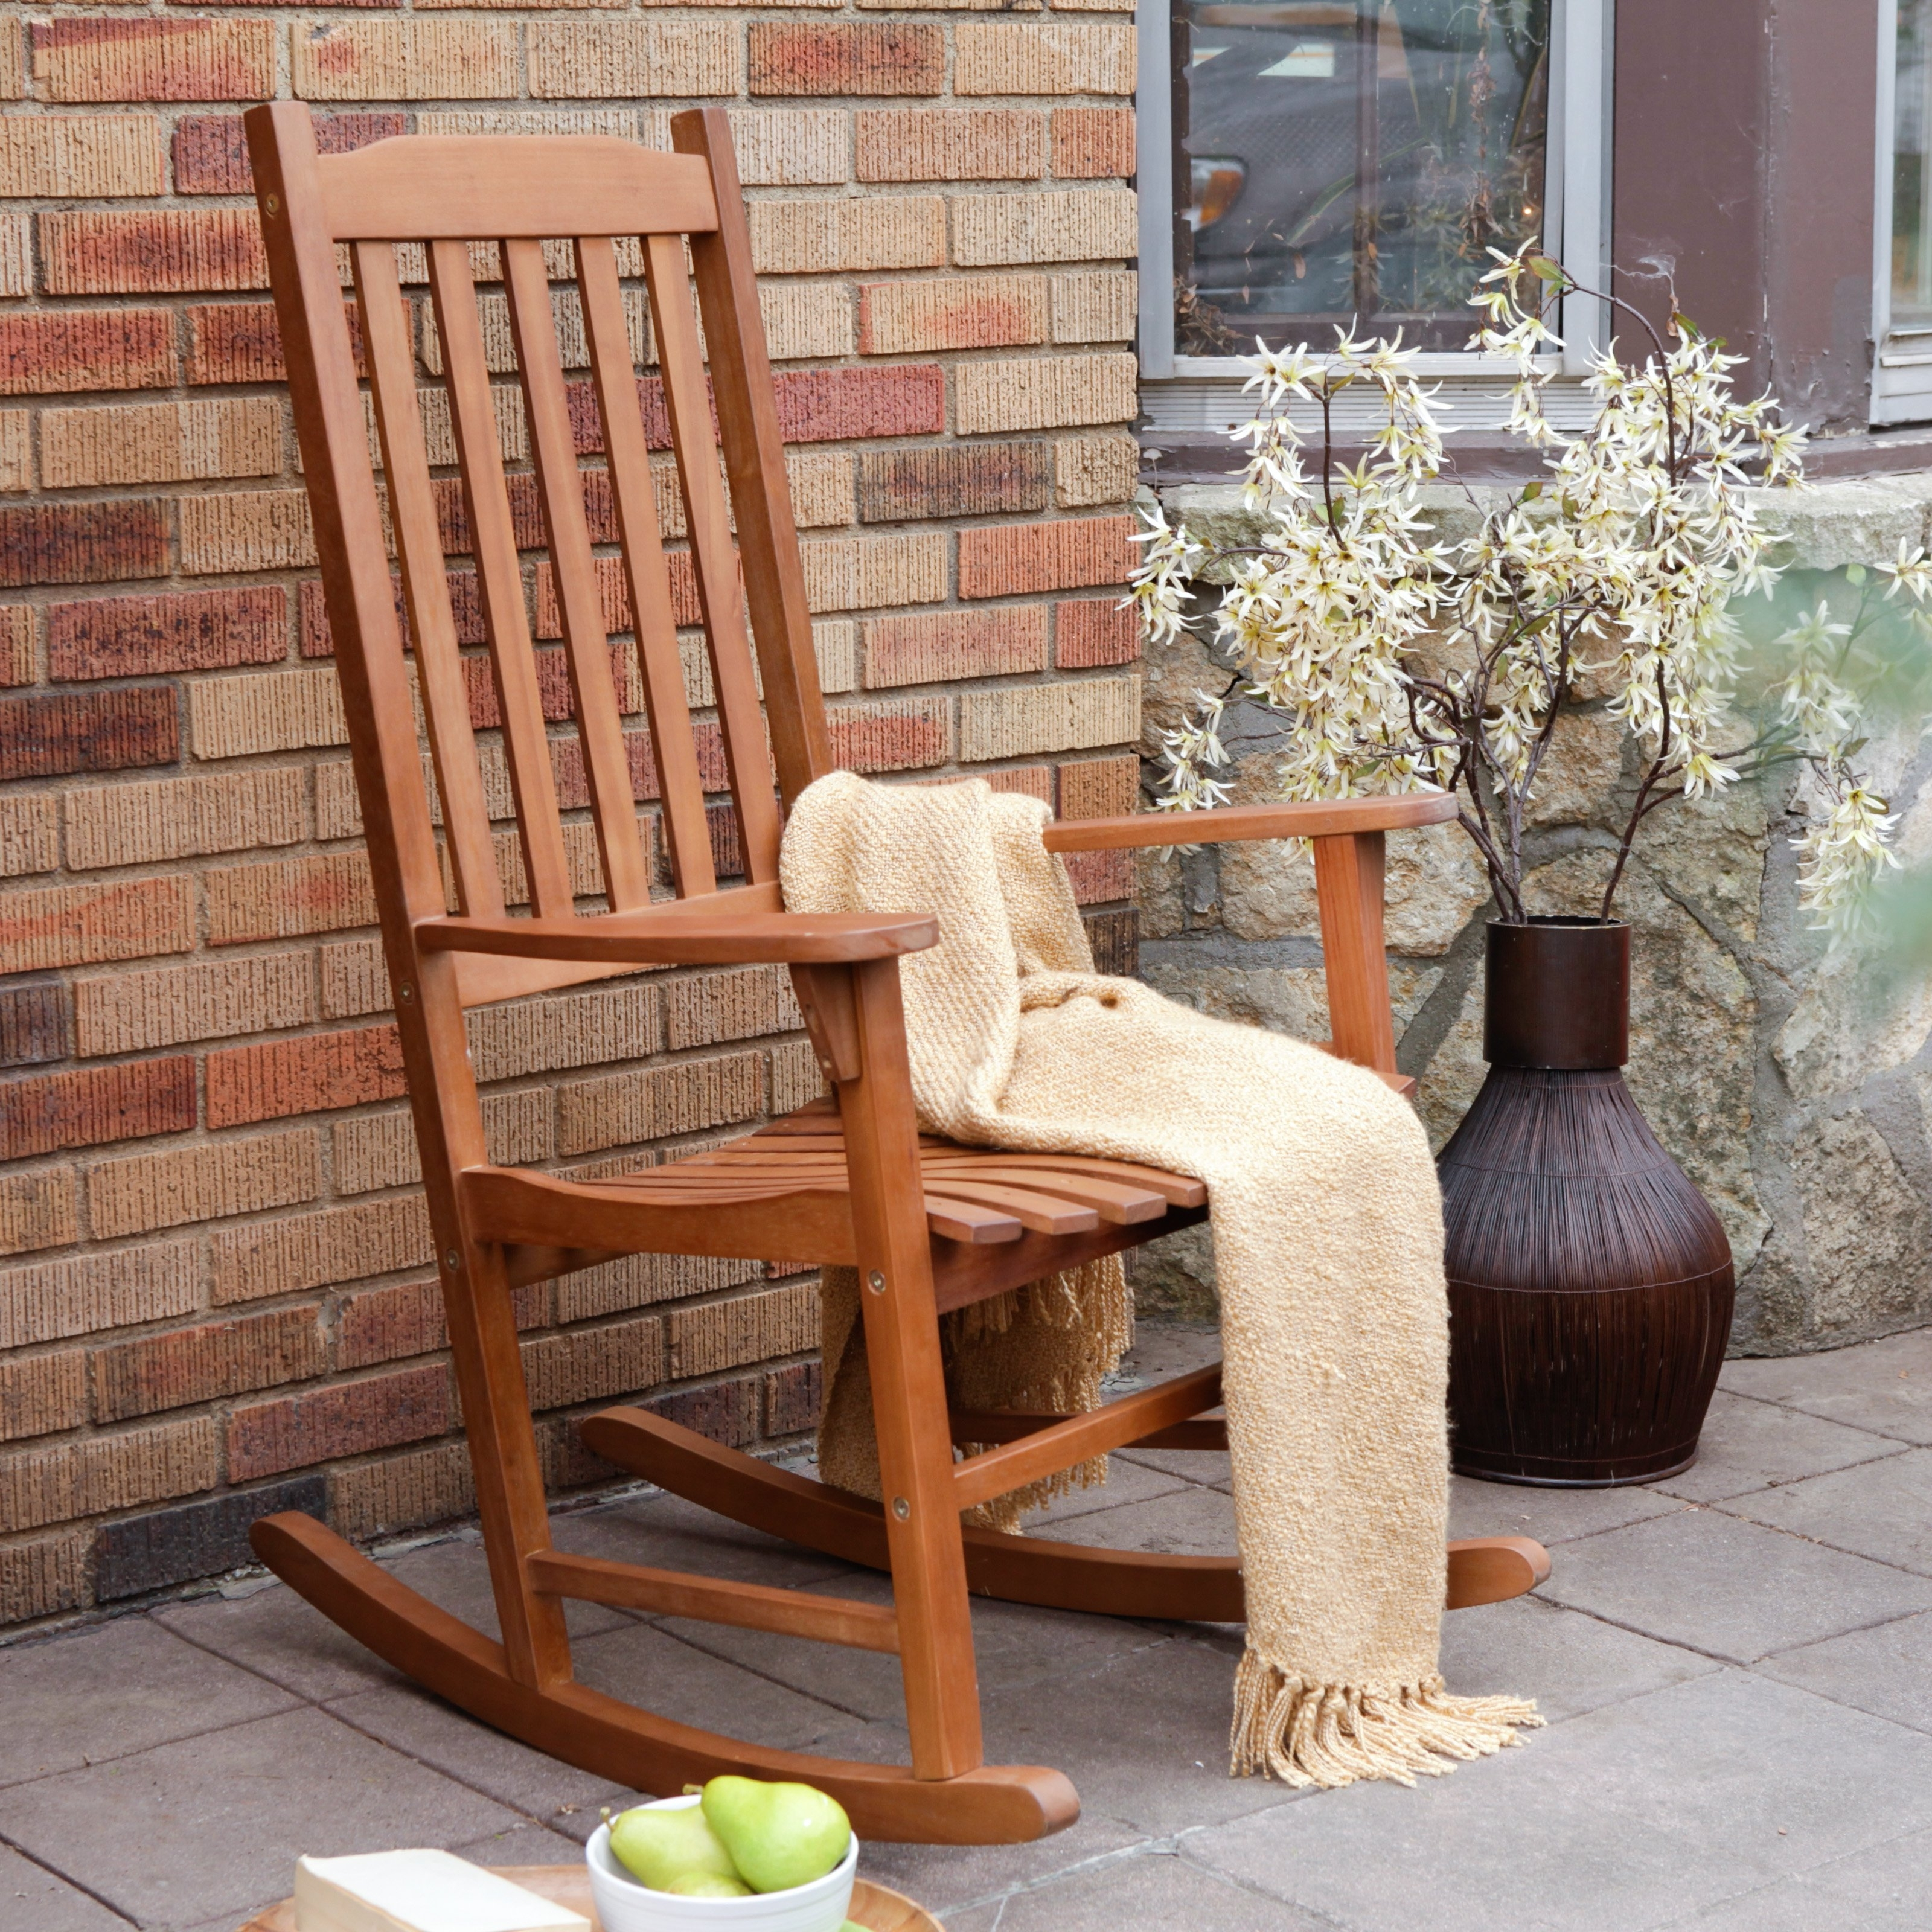 2019 Wooden Patio Rocking Chairs Intended For Coral Coast Indoor/outdoor Mission Slat Rocking Chair – Natural (View 5 of 20)